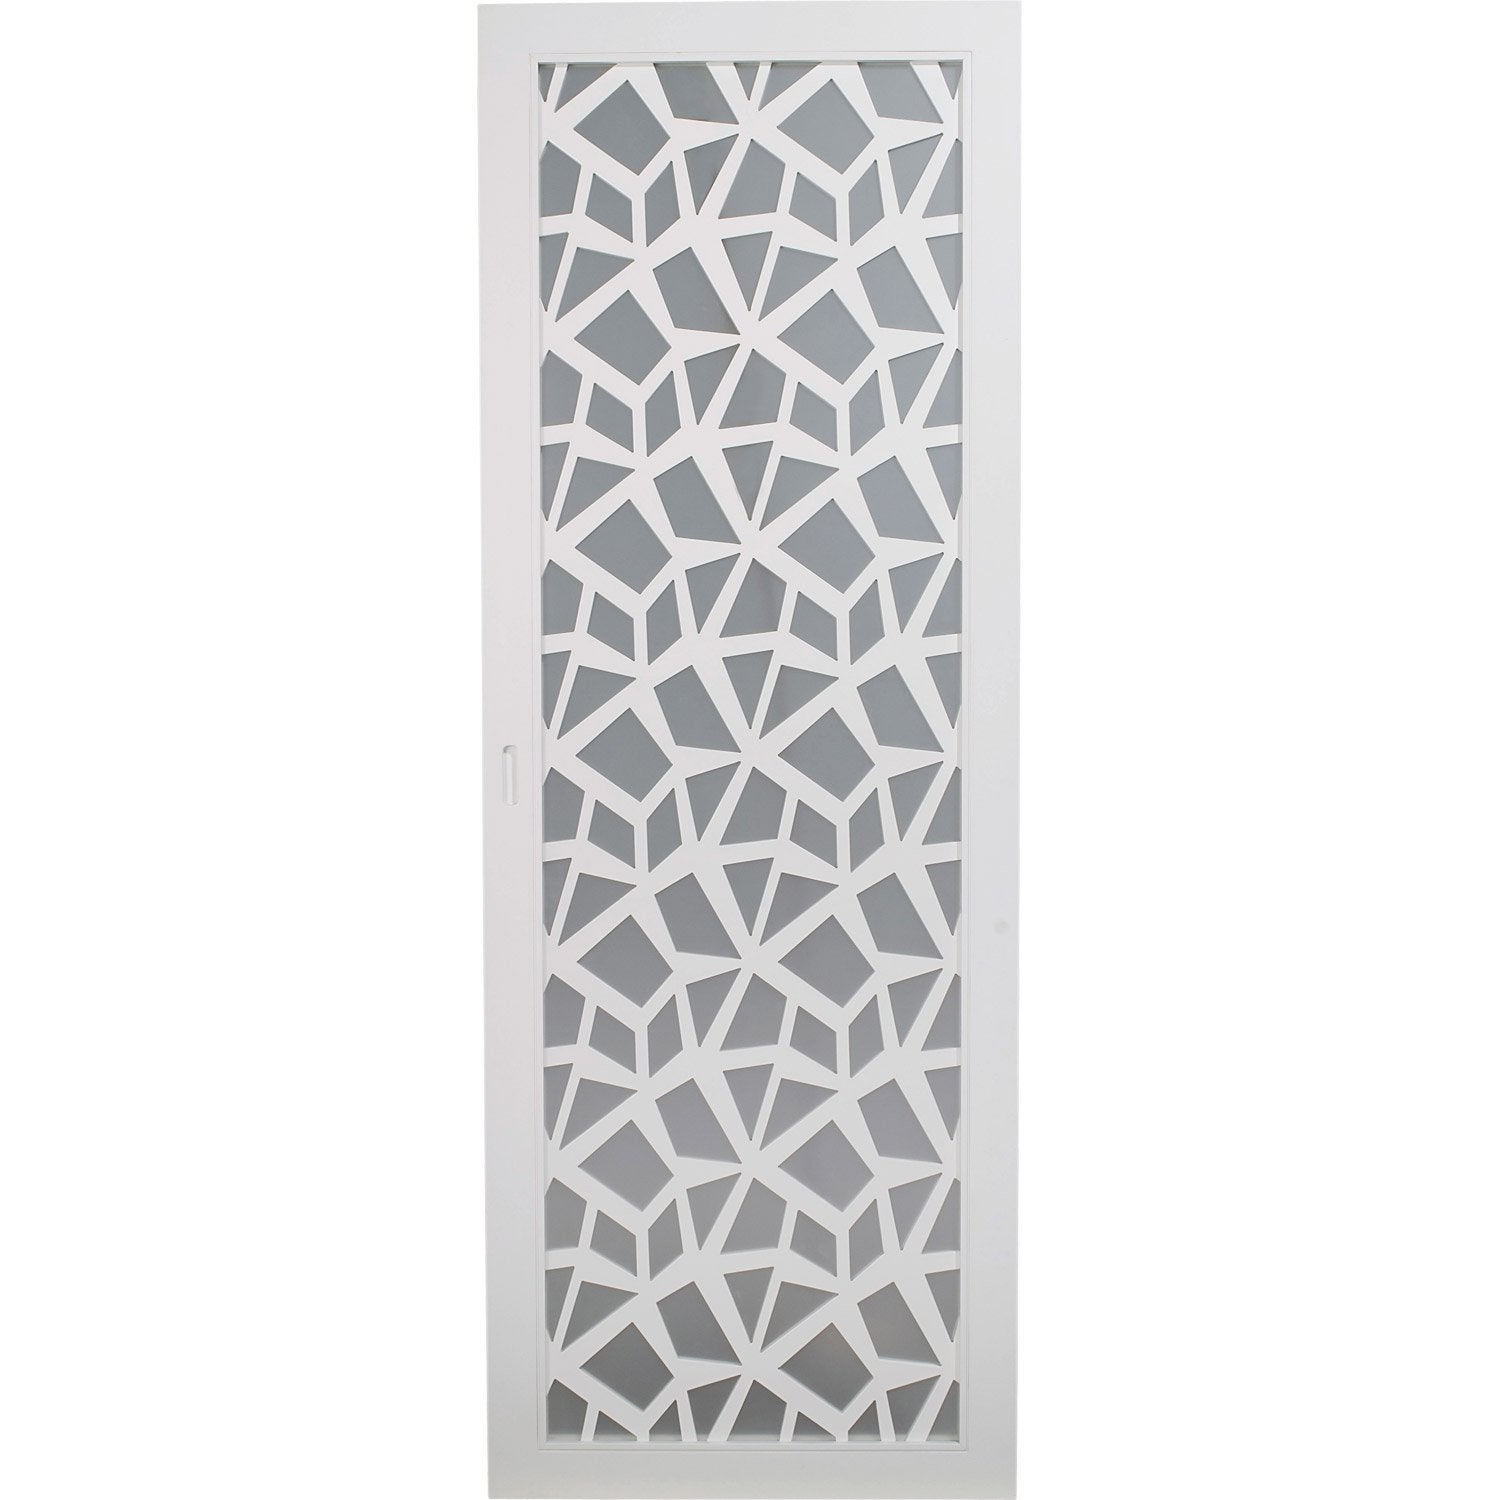 Porte coulissante plaqu blanc crash artens 204 x 73 cm for Porte en verre coulissante leroy merlin